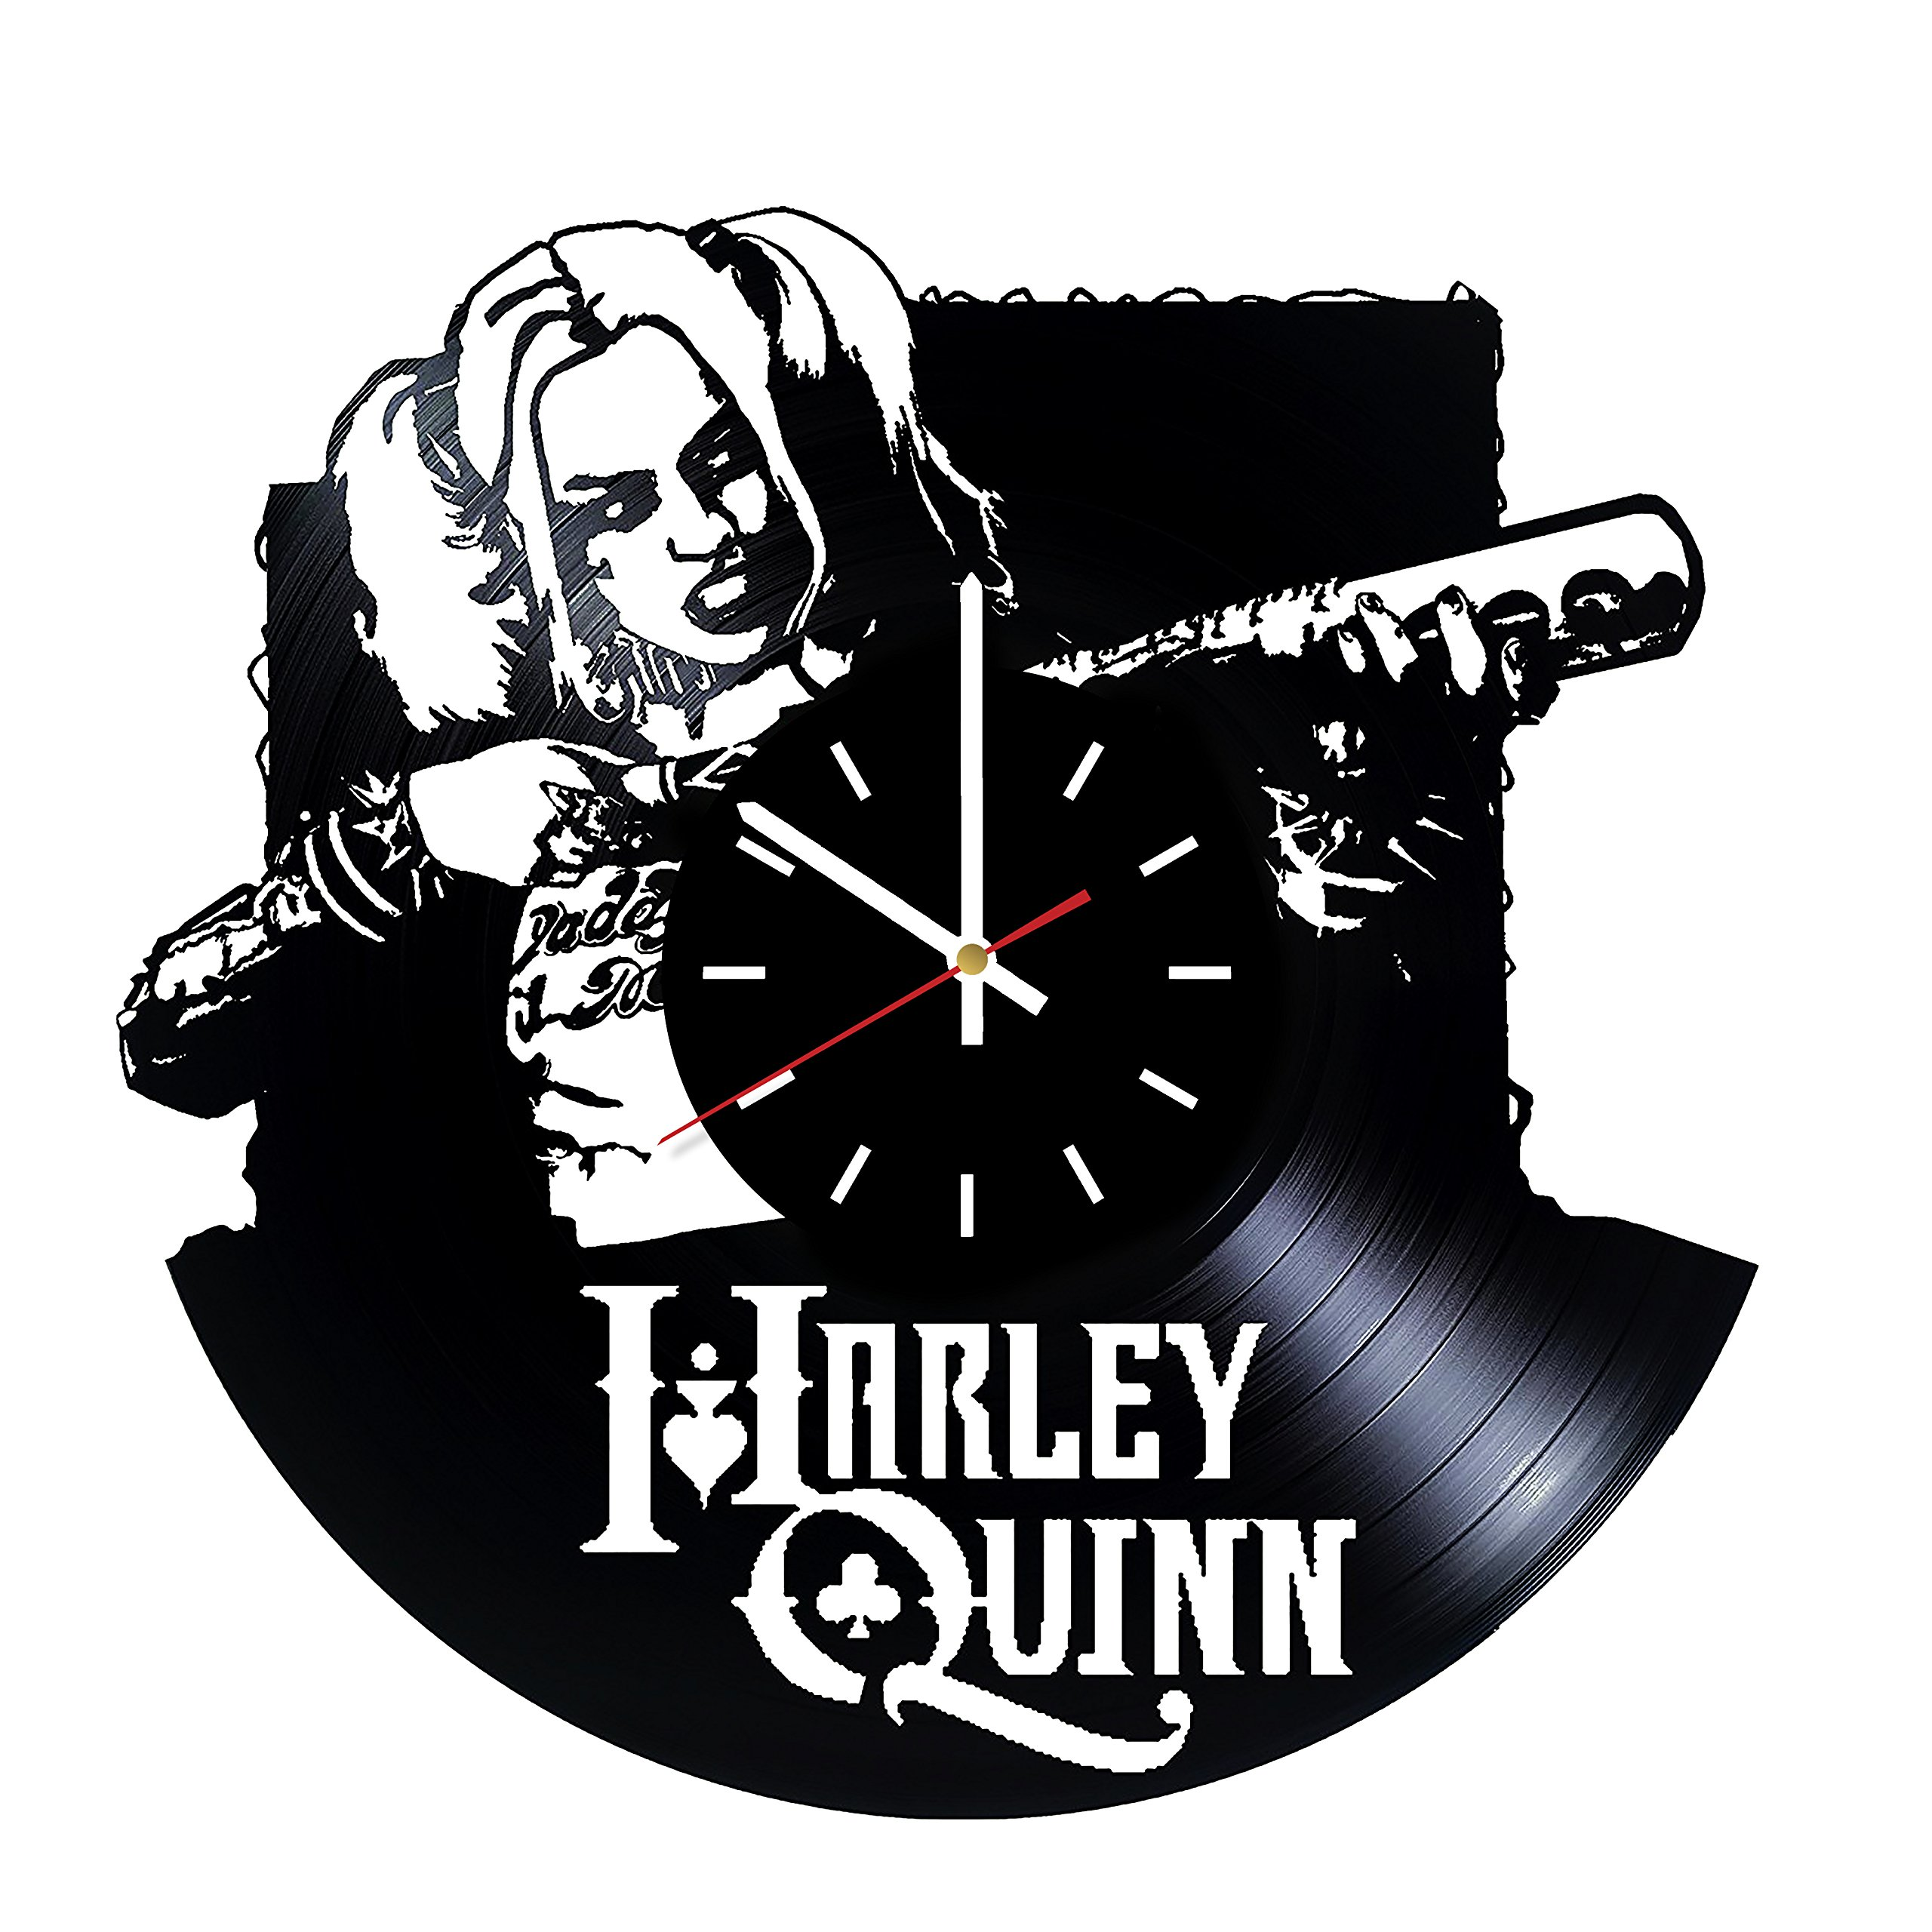 Harley Quinn Suicide Squad Vinyl Record Wall Clock - Living room or Bedroom wall decor - Gift ideas for friends, boys, men, women, girls – Movie Unique Art Design